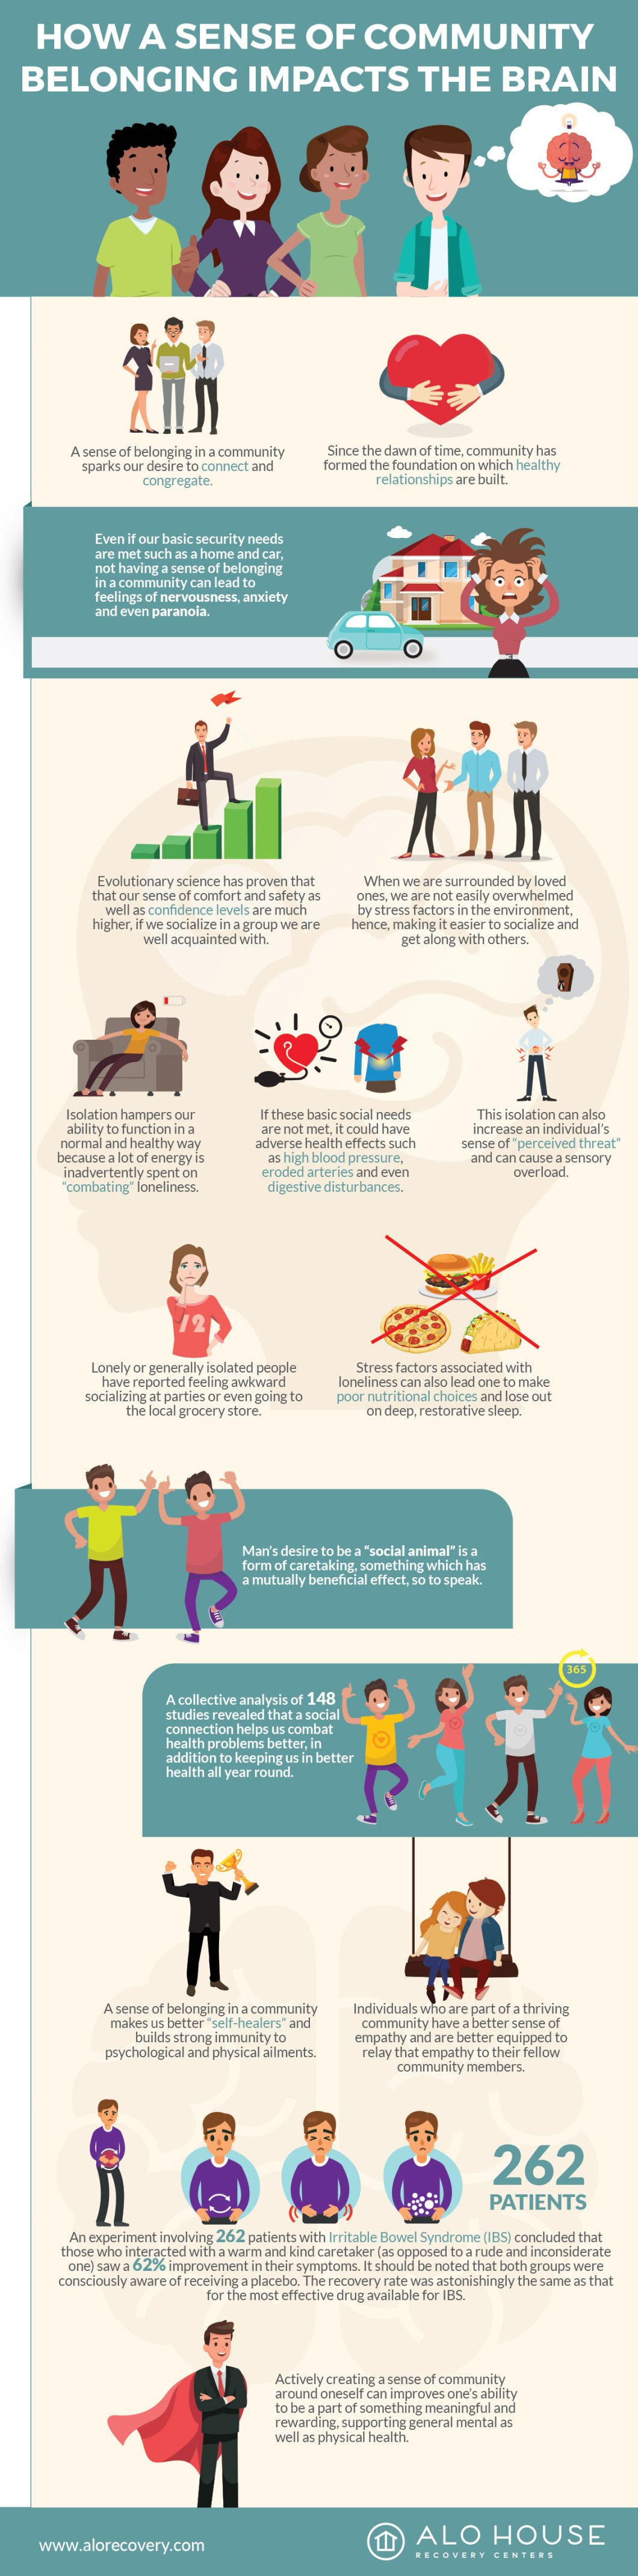 The Critical Linkage Between Community and Brain - Infographic